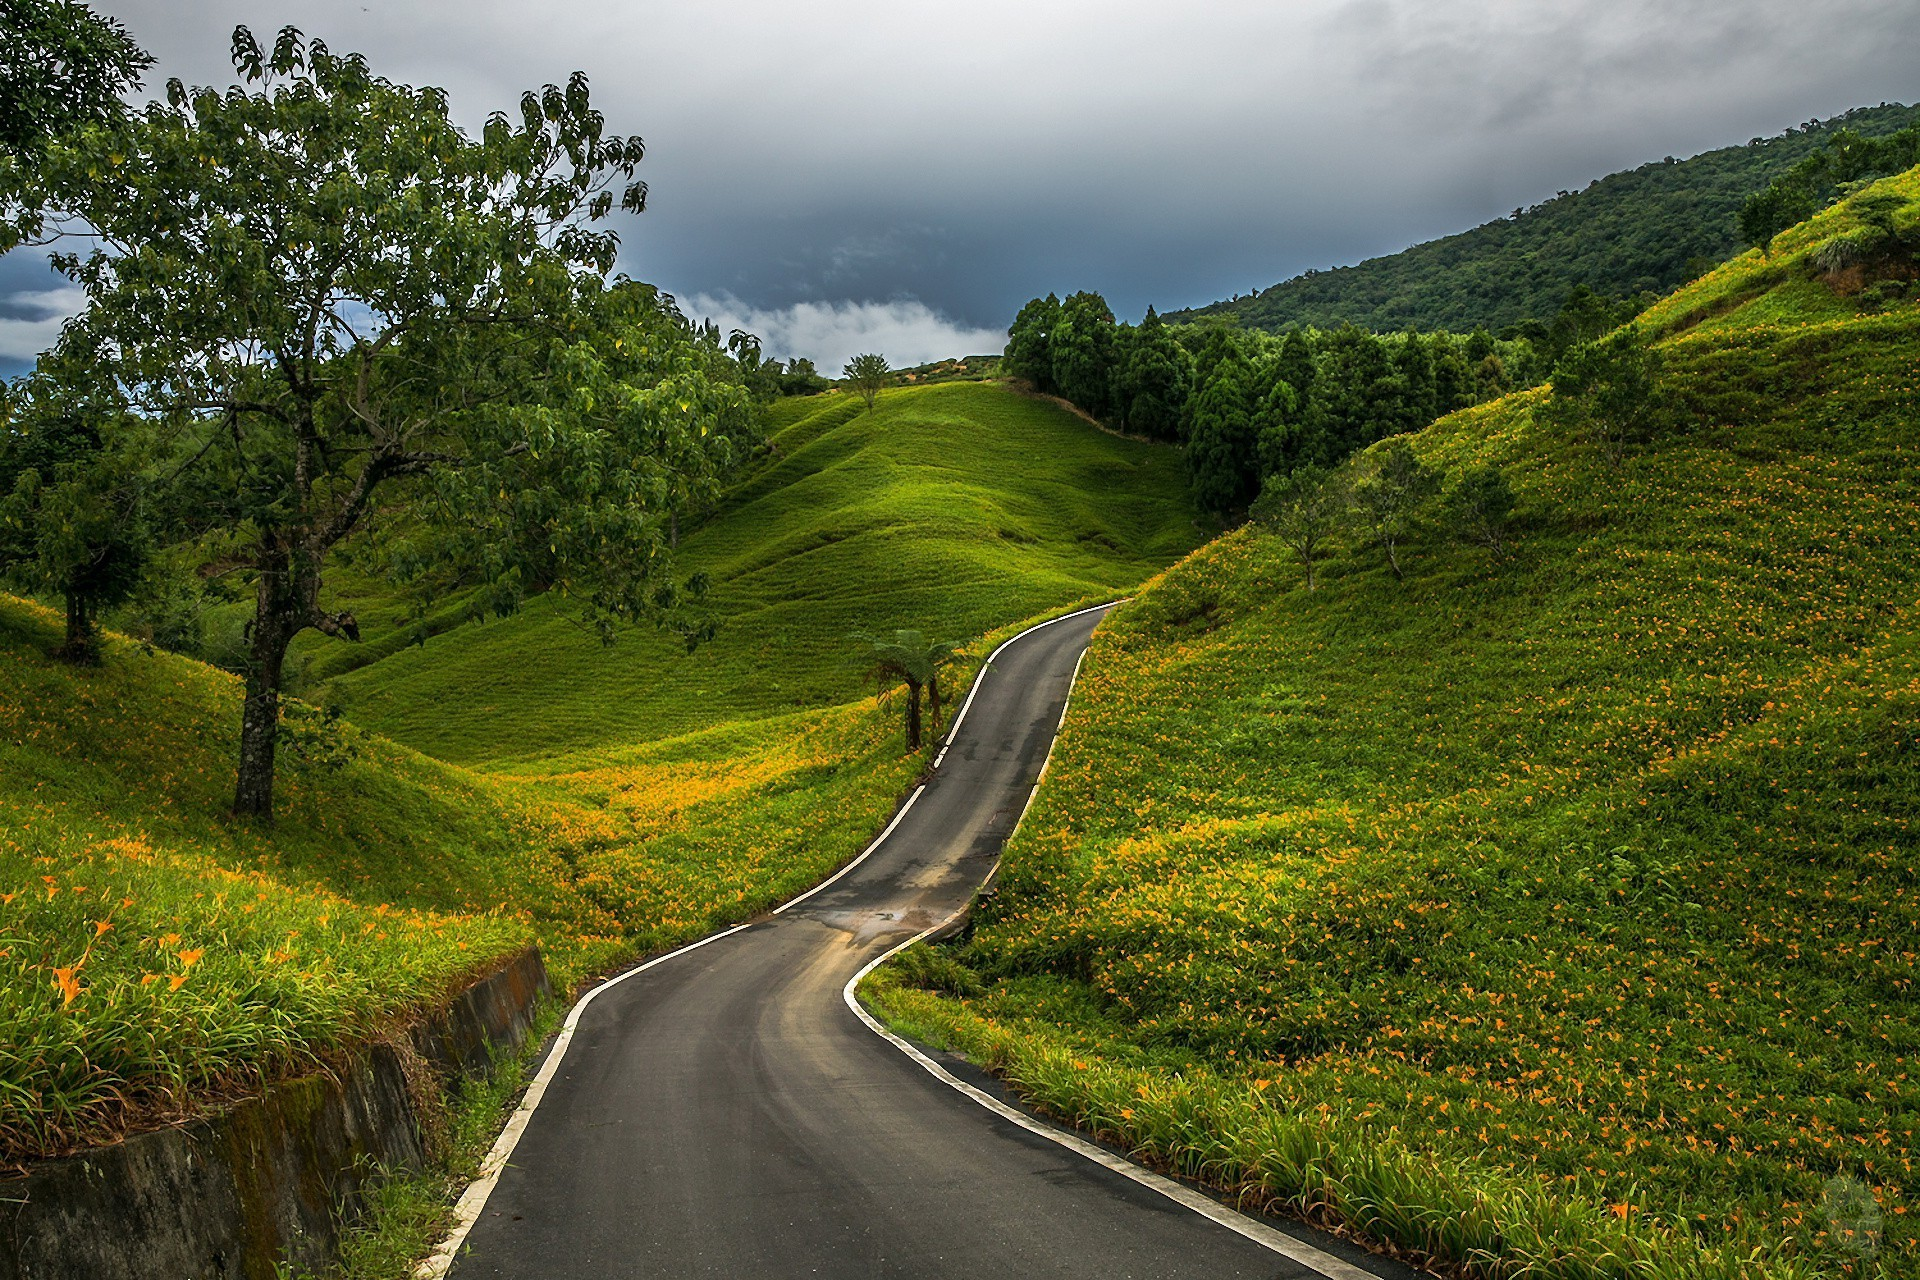 The serpentine road winds among green hills